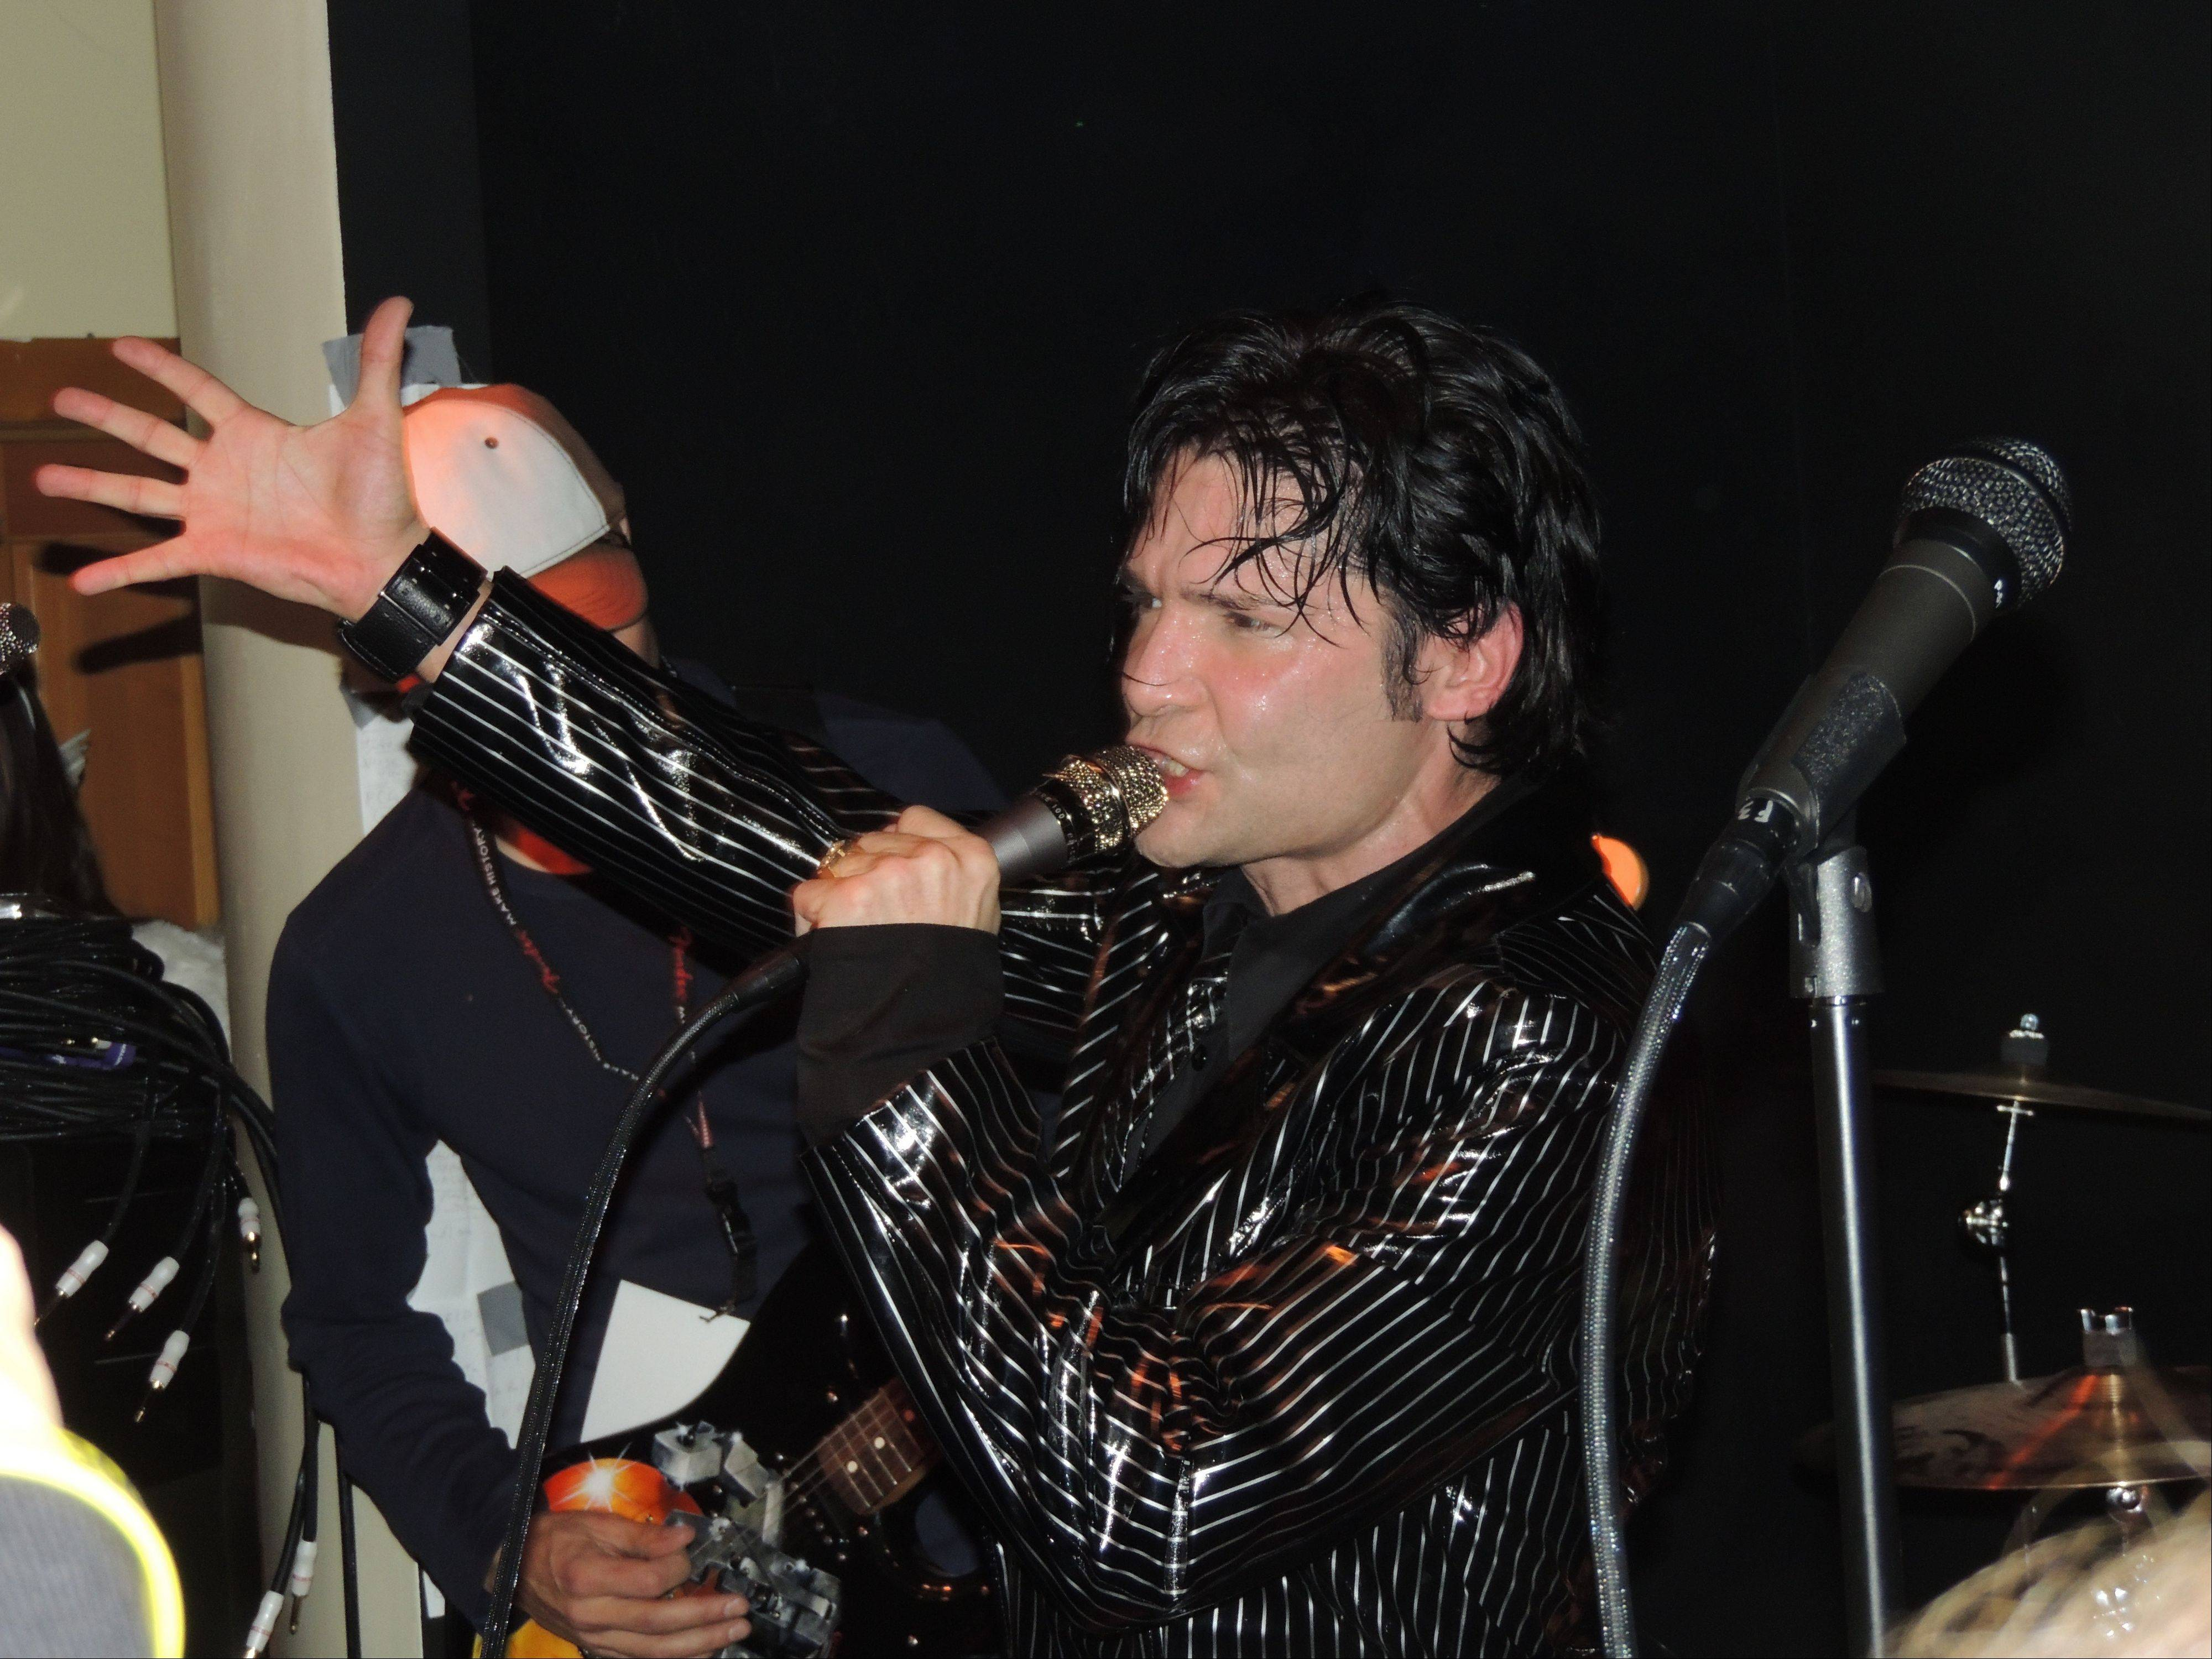 Corey Feldman performs Saturday at the Fender Music Lounge in Park City, Utah.